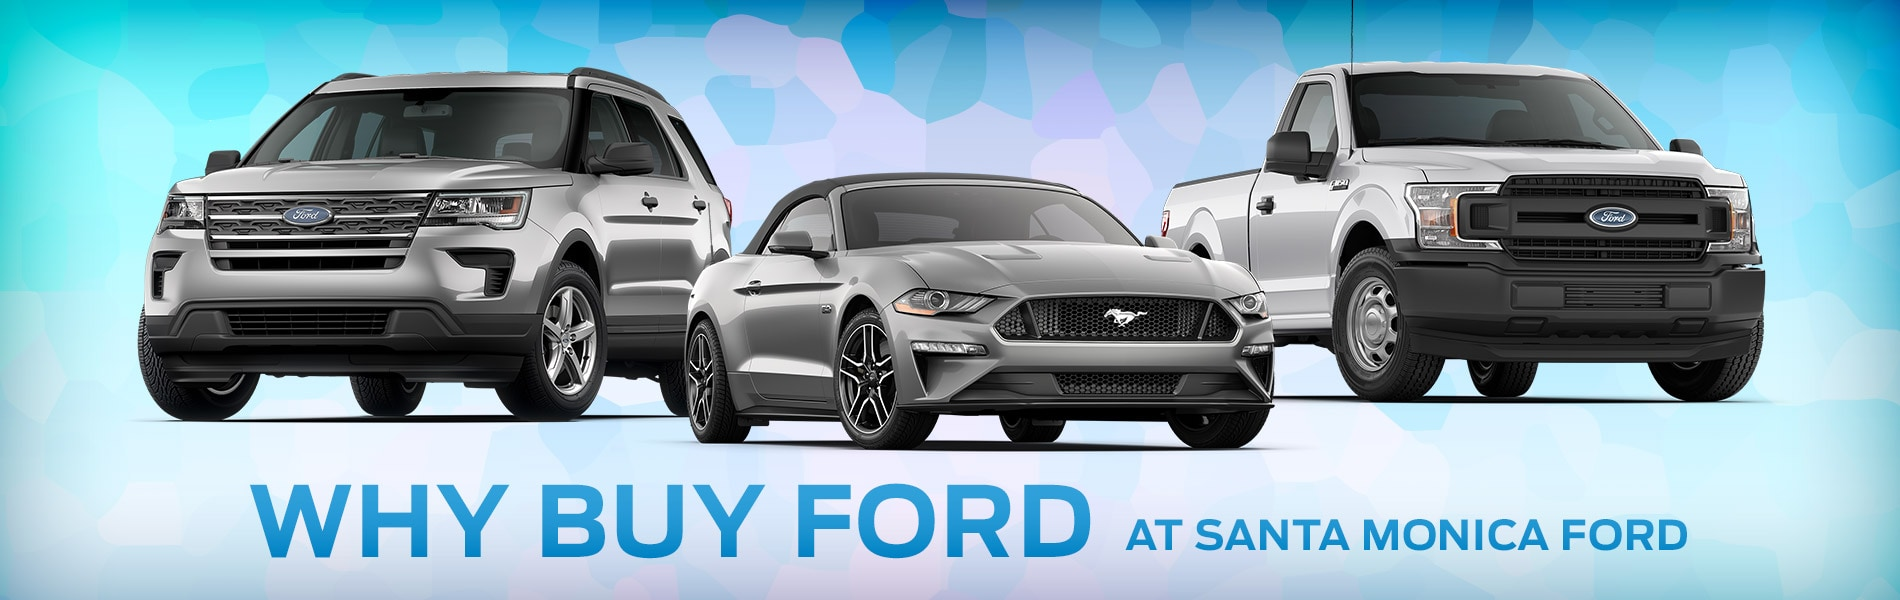 Whether youre looking for an unstoppable pickup an efficient hybrid a powerful sports car or anything in between the 2018 lineup of ford vehicles has